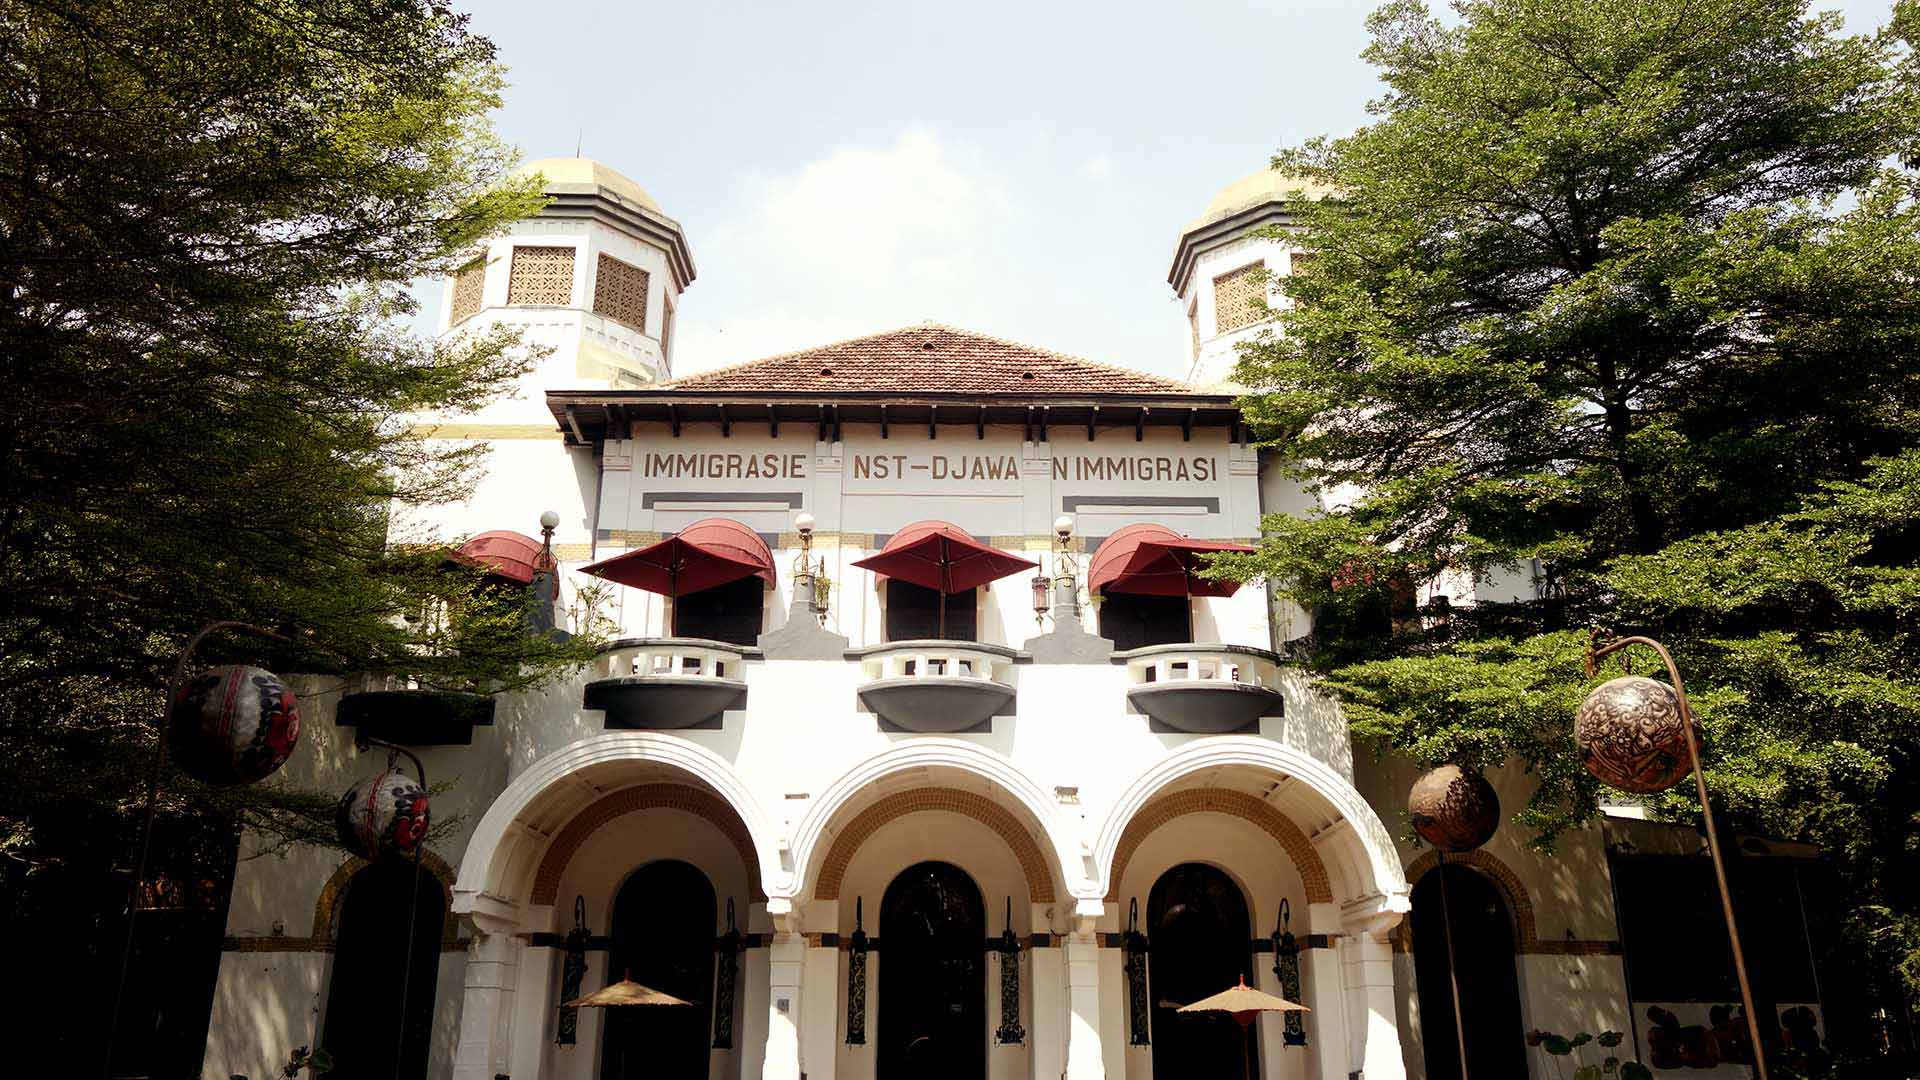 Heritage Trail In The Old City with Alila Jakarta